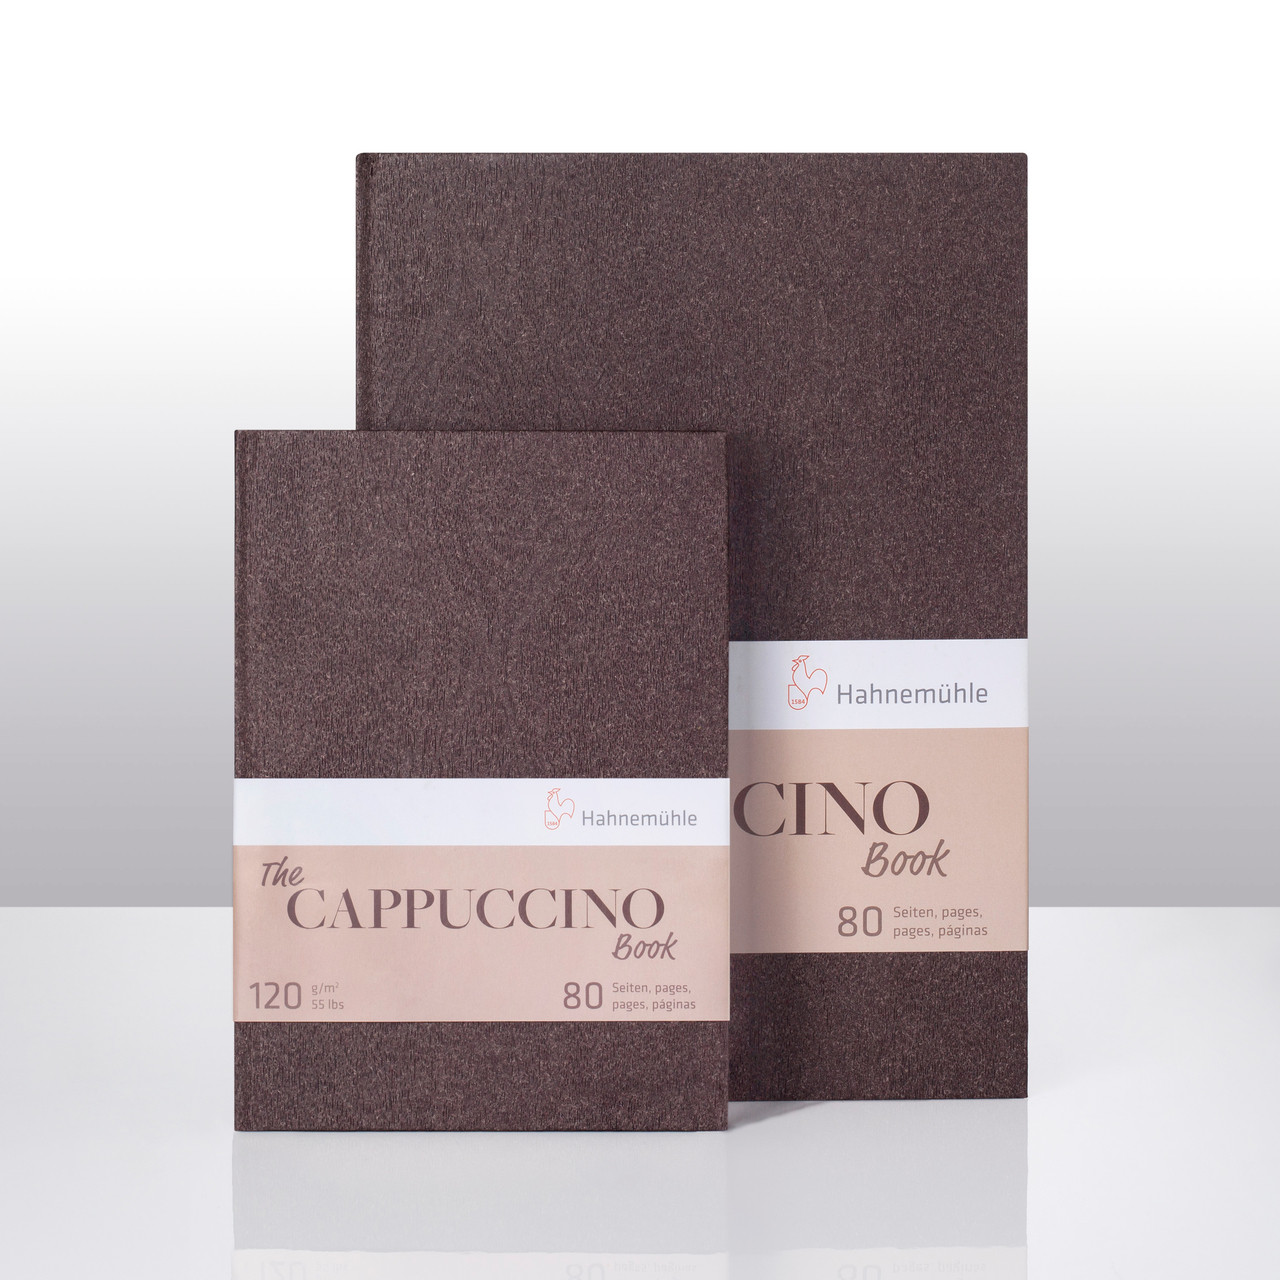 Hahnemuhle Cappuccino Sketch Books, A4 (8.3x11.7) and A5 (5.8x8.3)